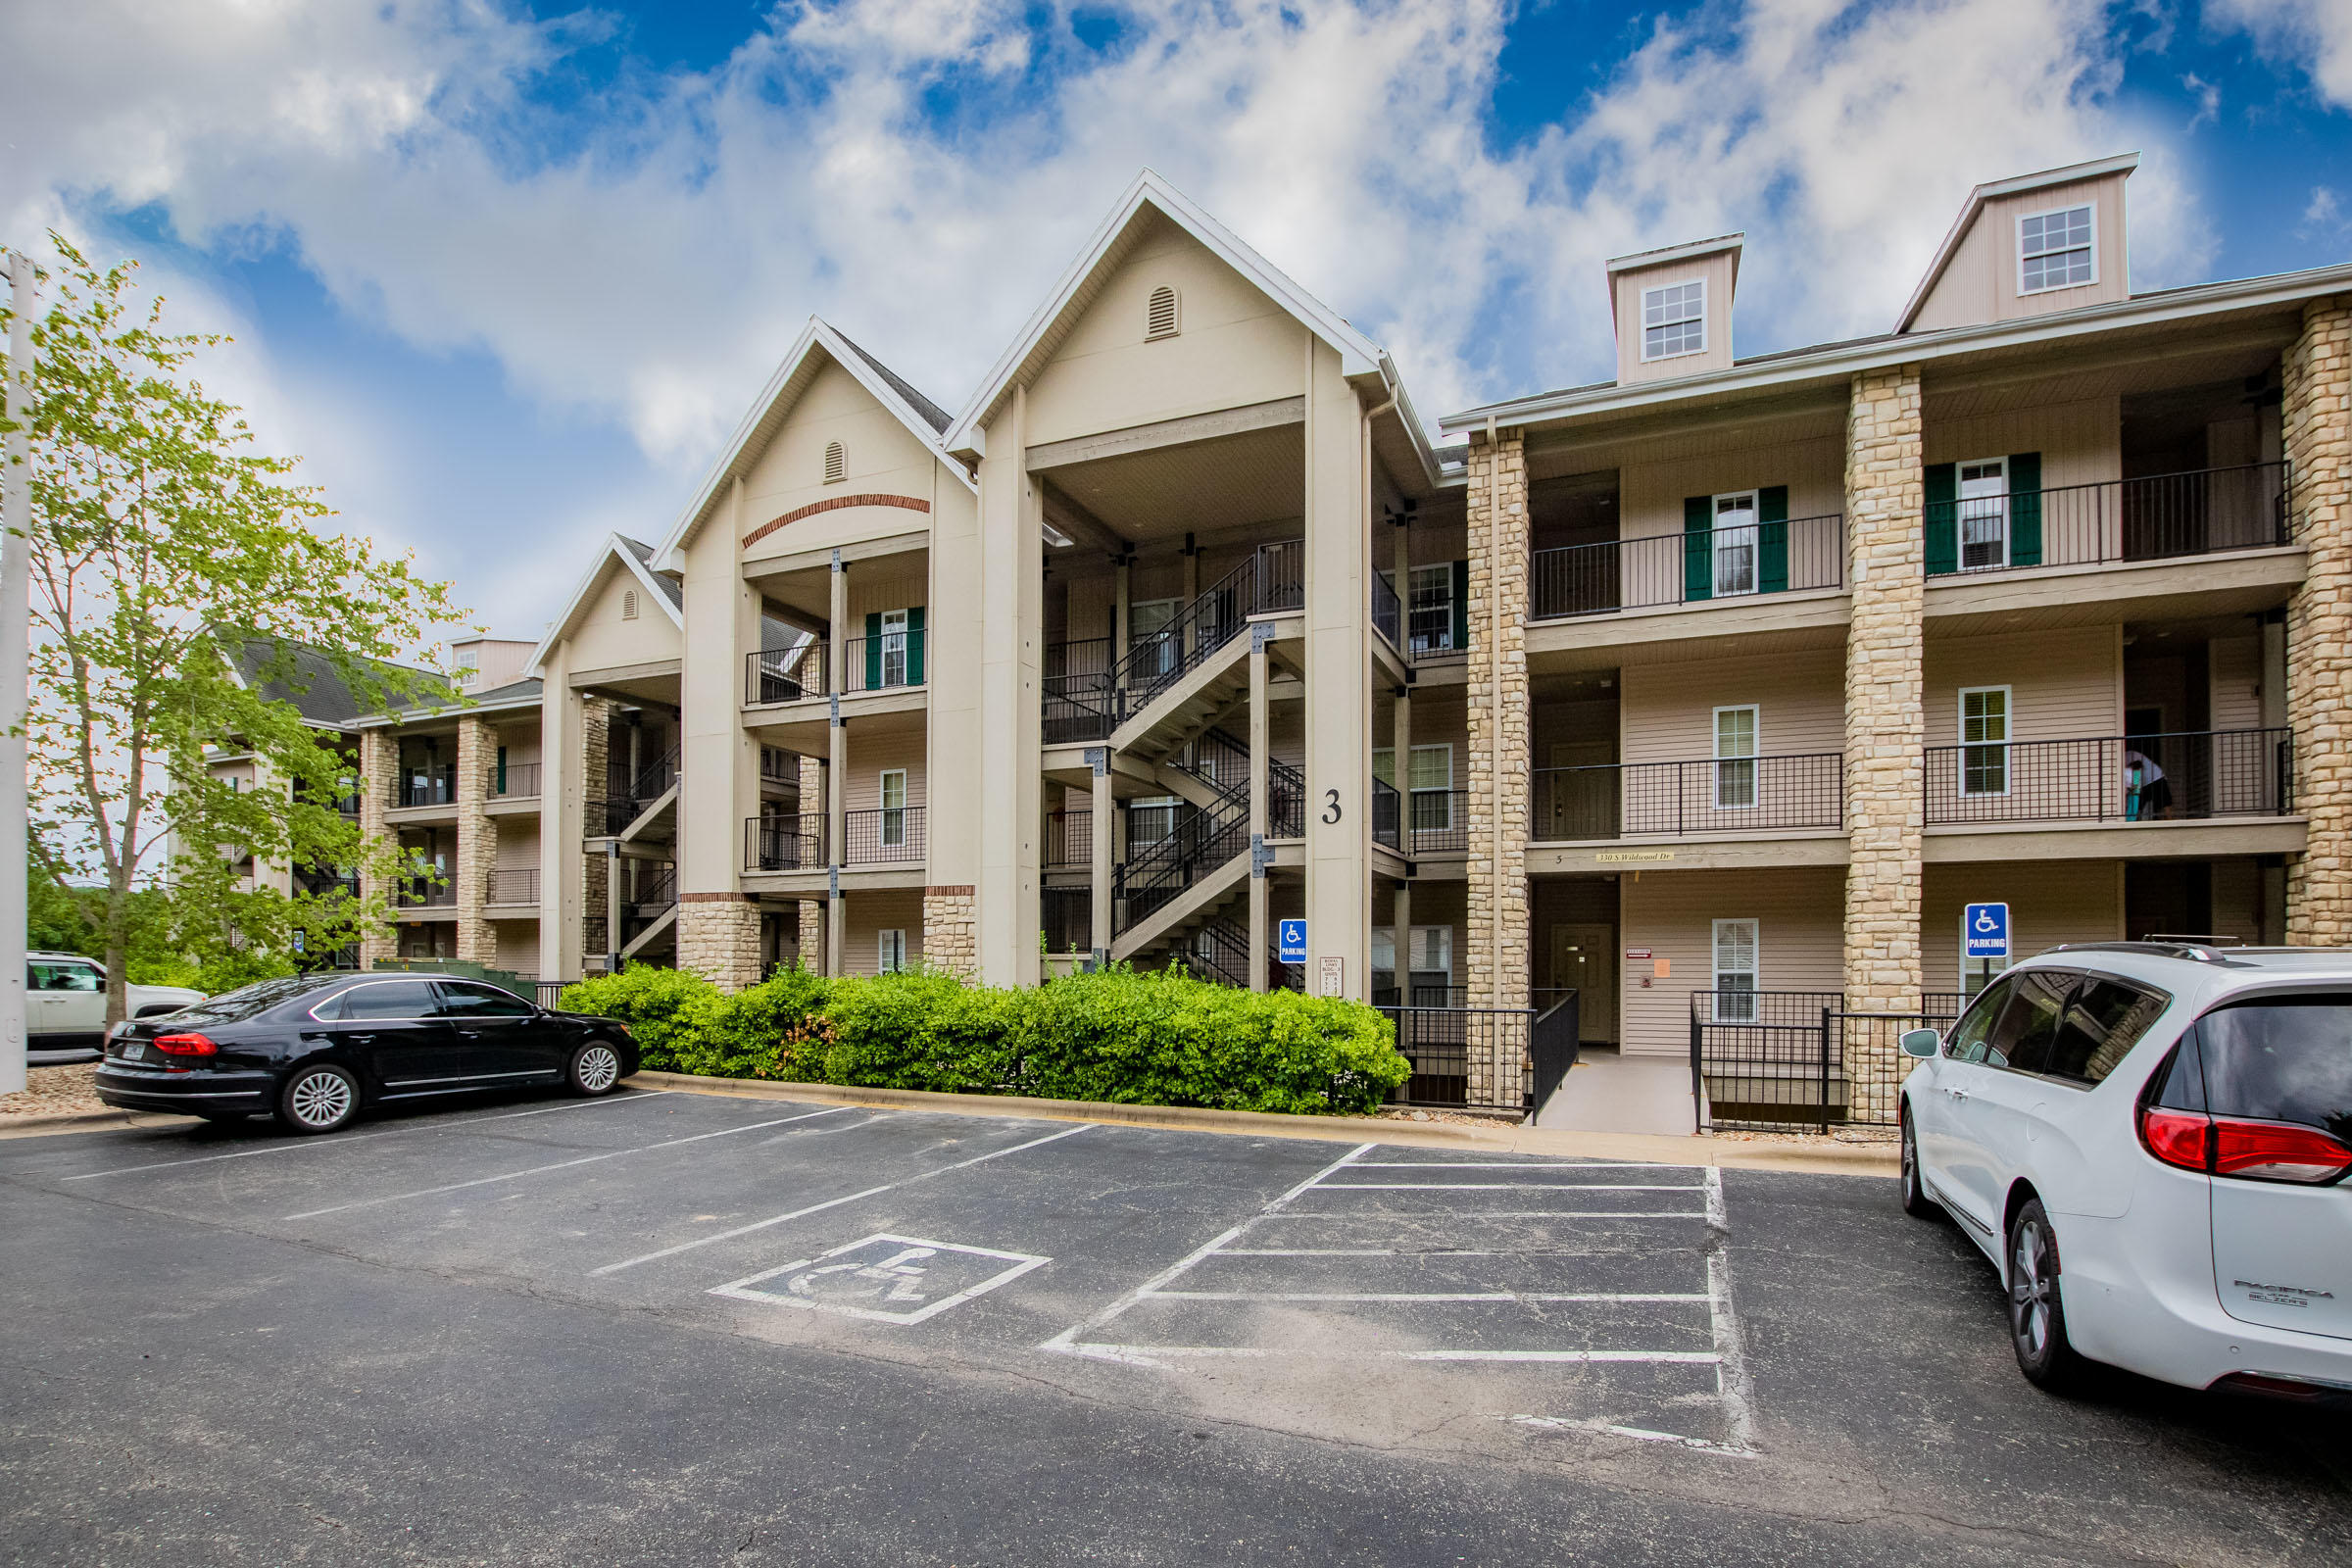 330 South Wildwood South Drive UNIT 7&8 Branson, MO 65616